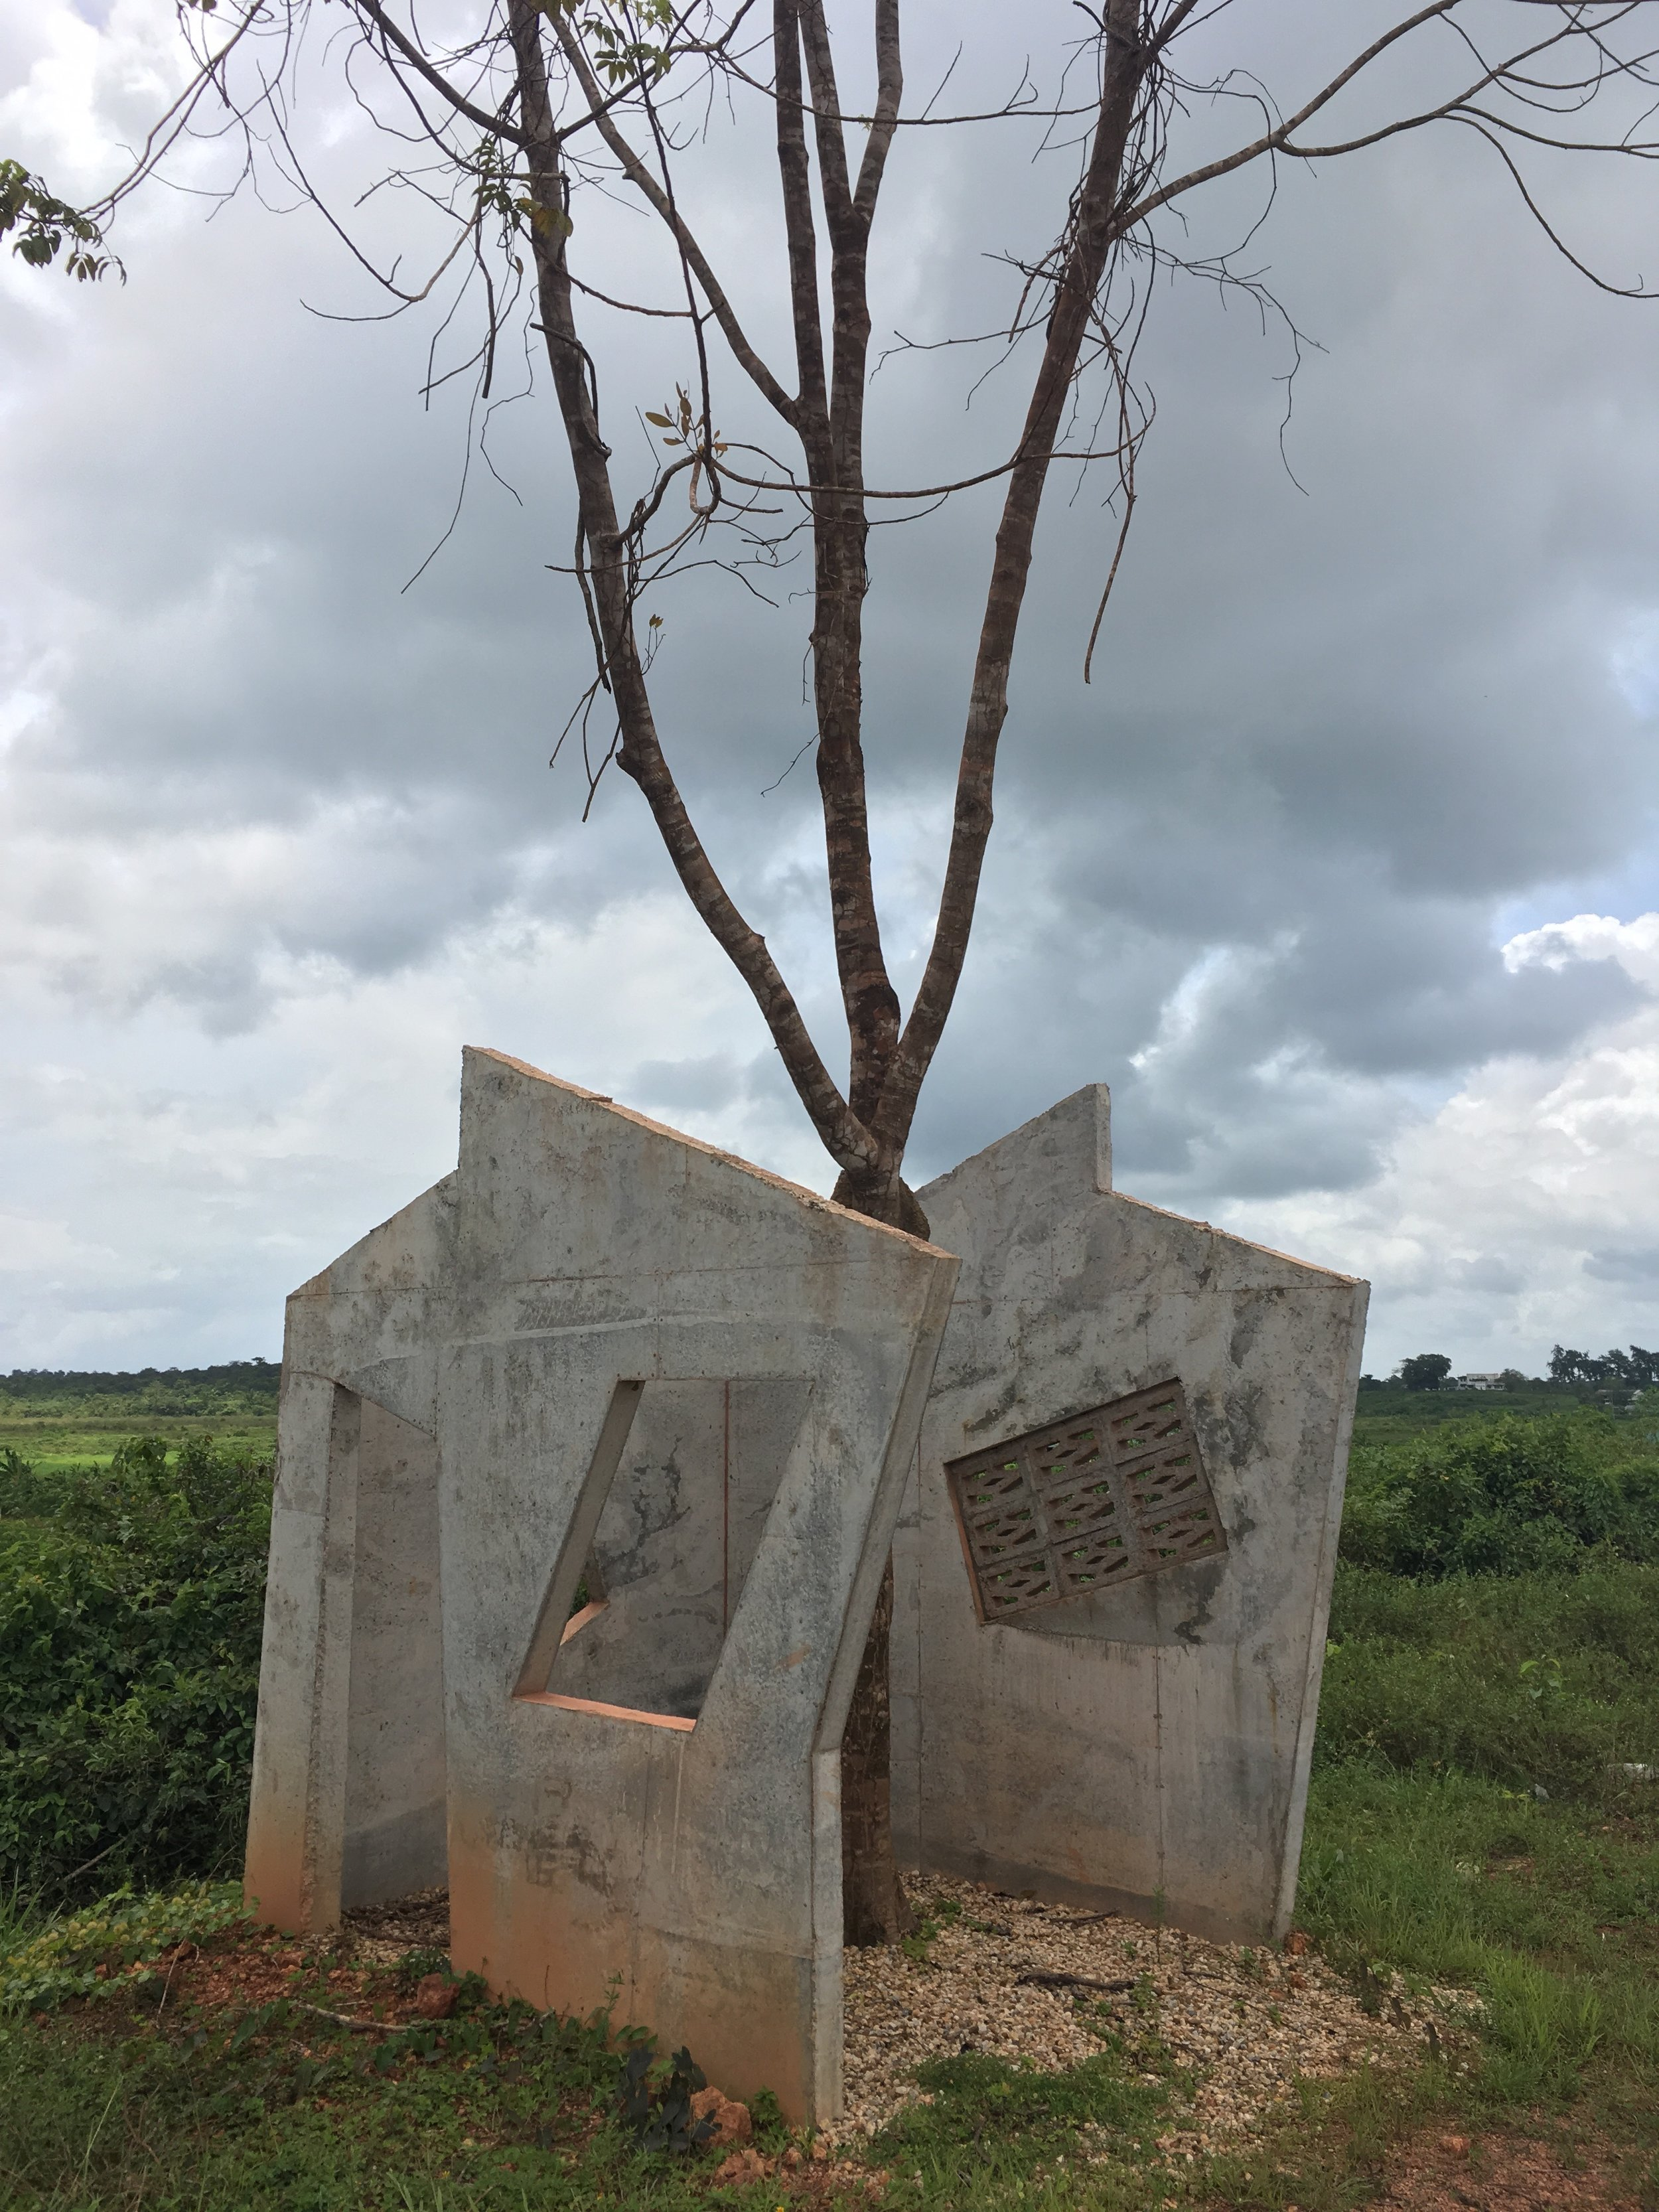 Dutch artist Feiko Becker's  Afu-Osu  (half-house in Ndyuka) was a part of the artist's broader reflection on failure. He noticed many unfinished houses in Moengo and thought these were failed projects. When he later discovered that it often takes as long as ten years to build a house in Suriname, he realised that what he was observing was not failure, but rather a long process of becoming.